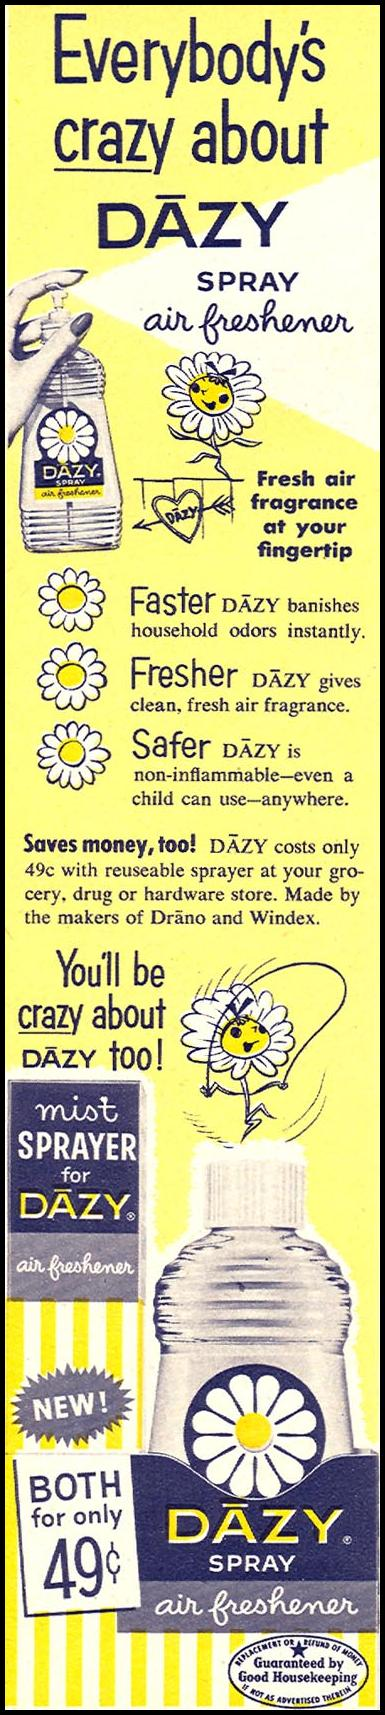 DAZY SPRAY AIR FRESHENER FAMILY CIRCLE 01/01/1956 p. 44